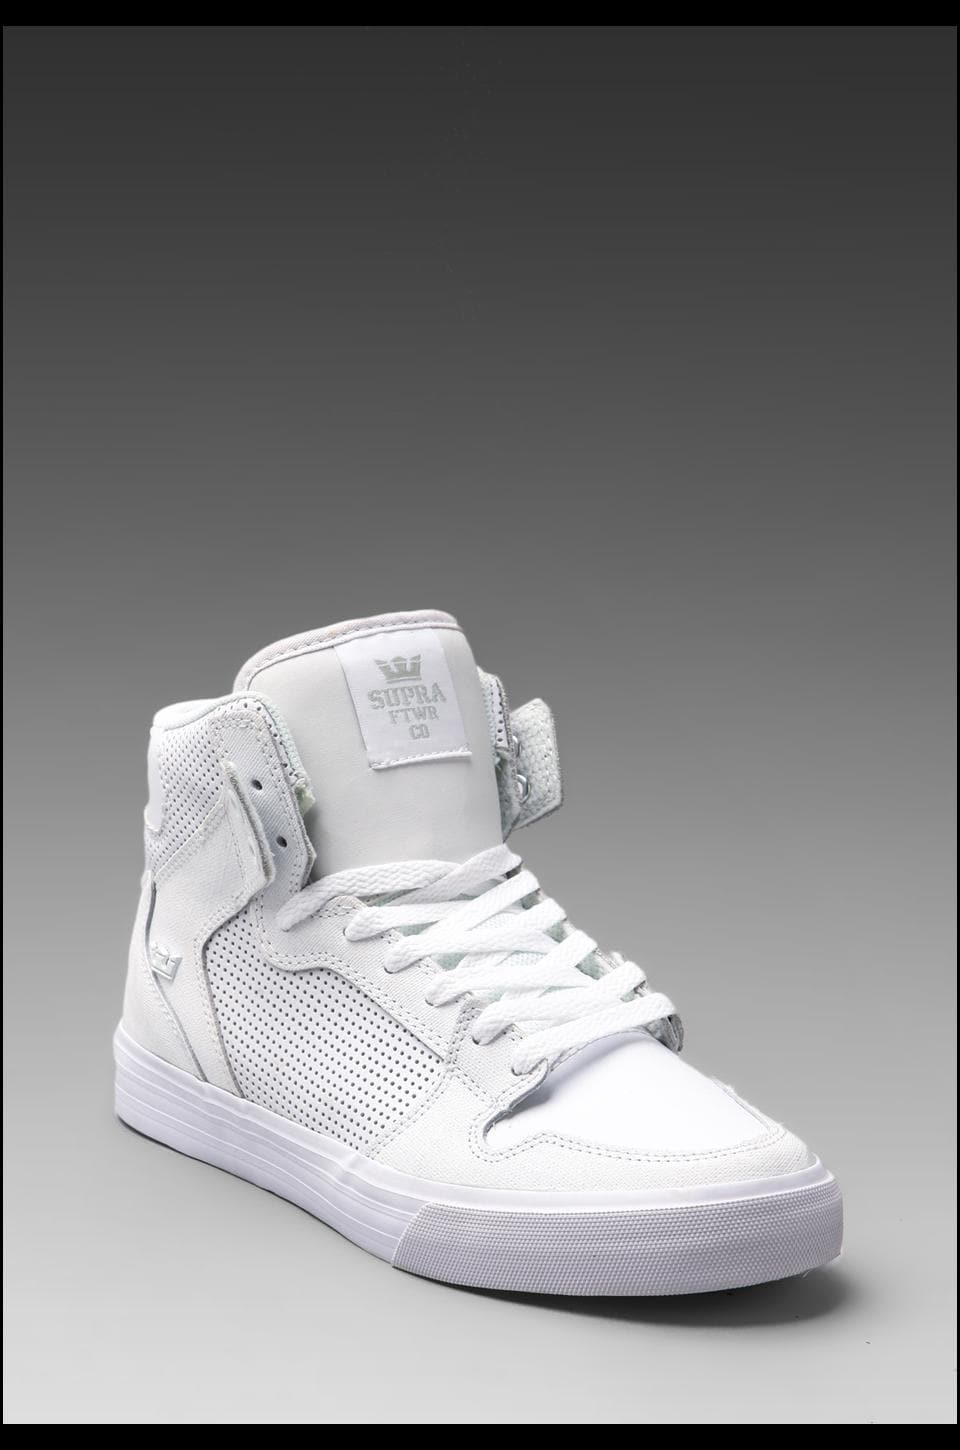 Supra Vaider Microperf in White